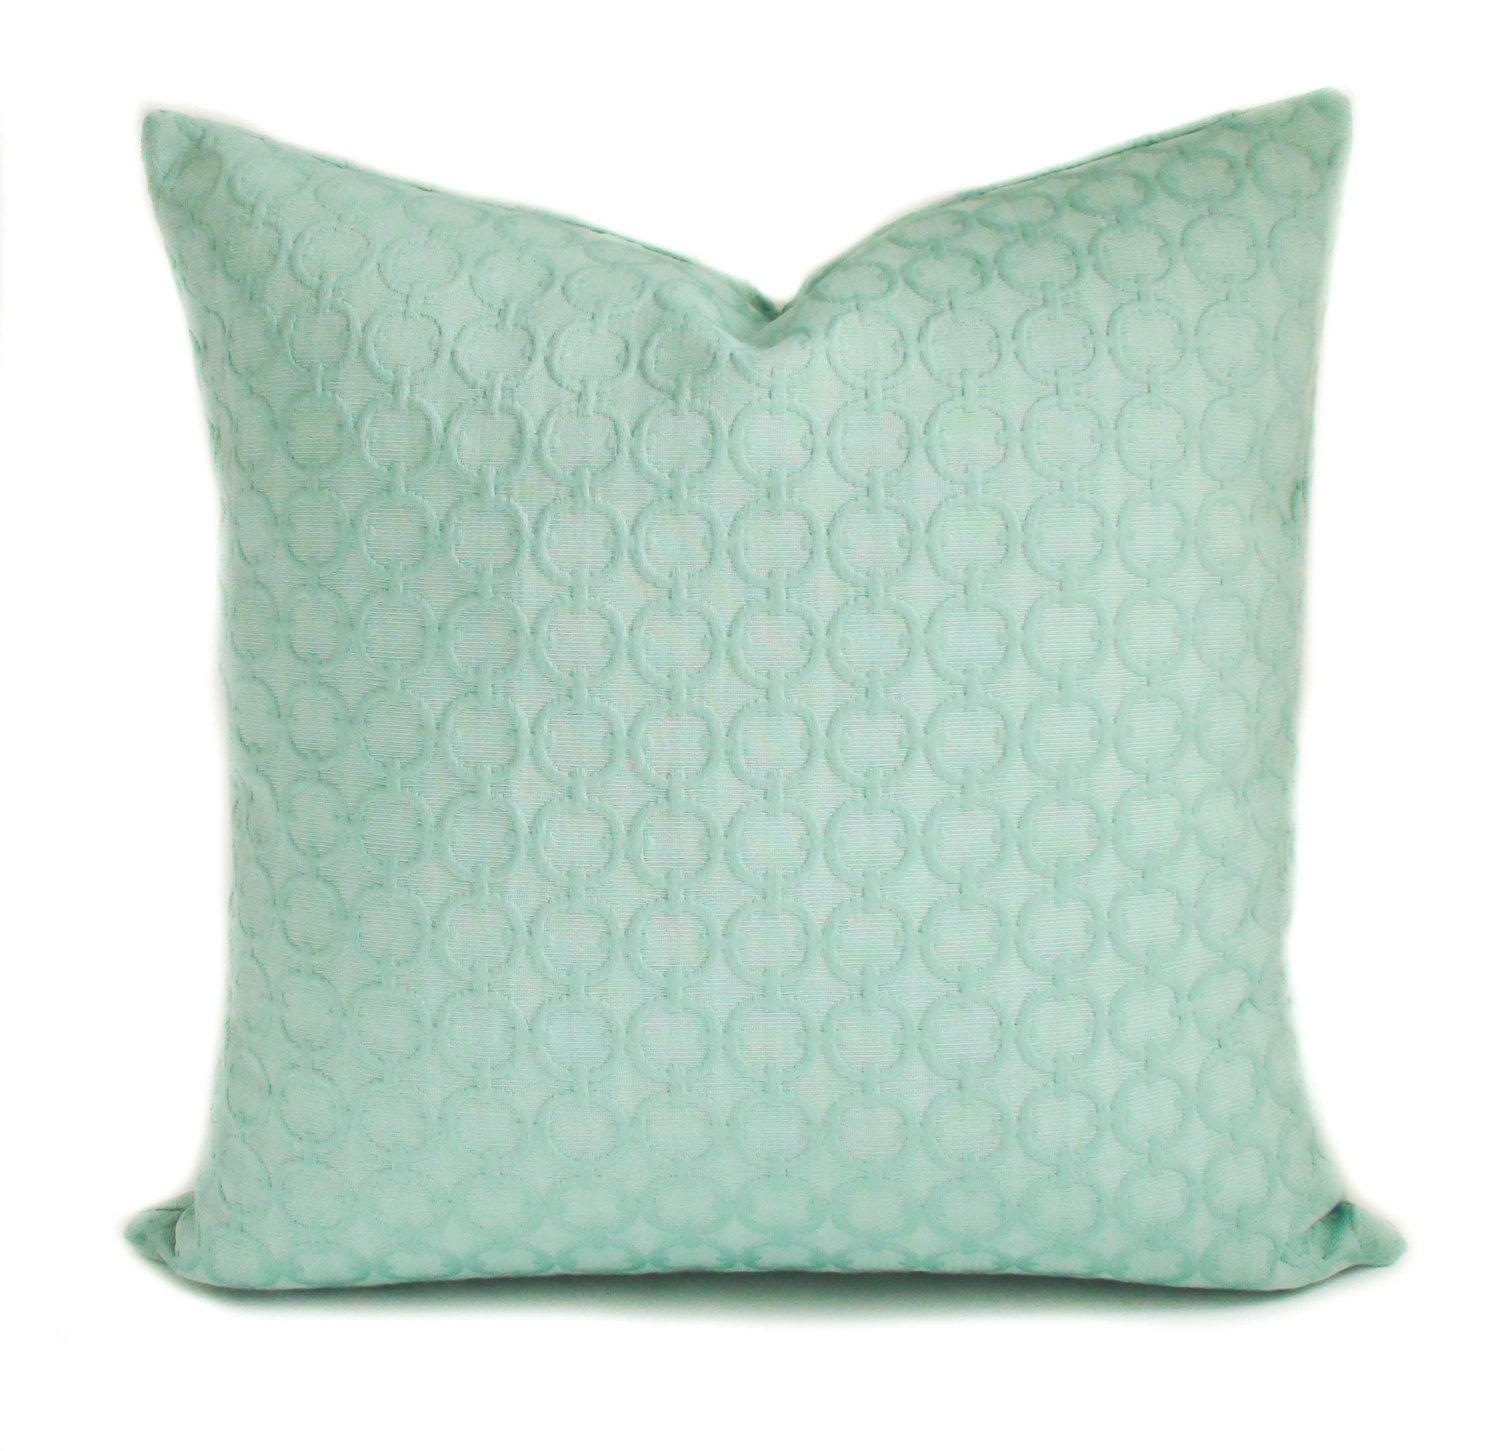 Pillow covers, Throw pillows, Couch cushions, Decorative pillows ...